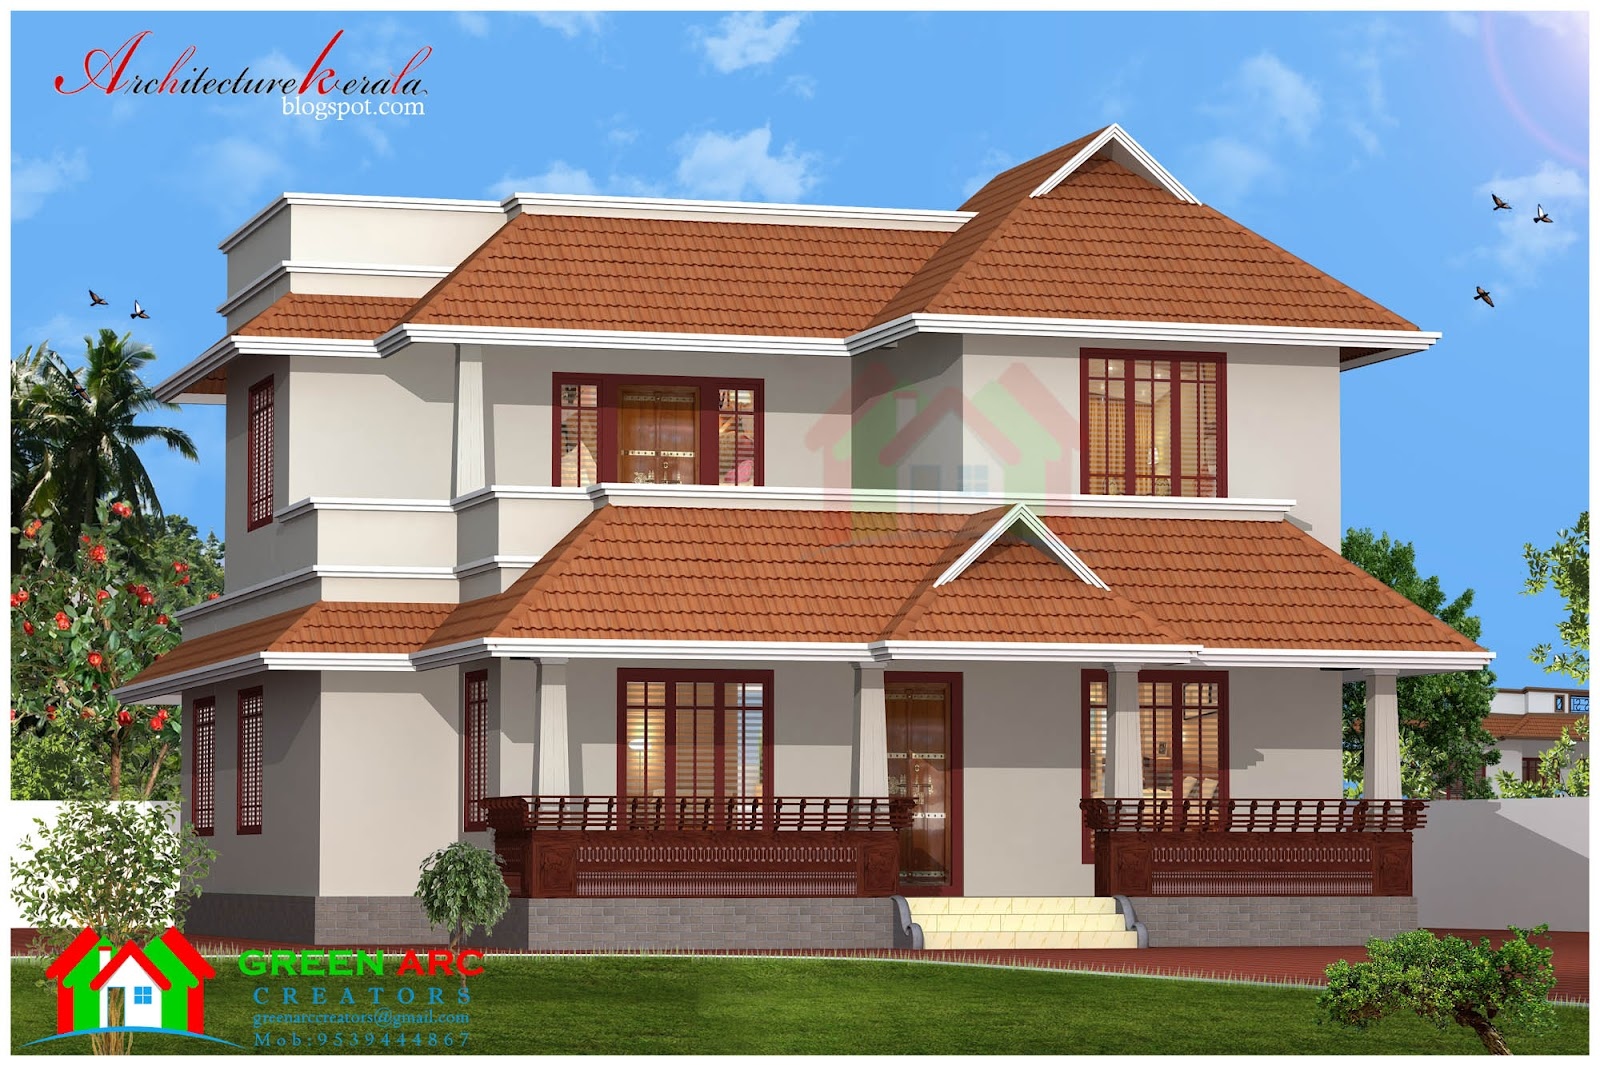 Architecture kerala traditional style kerala house plan for Conventional house style